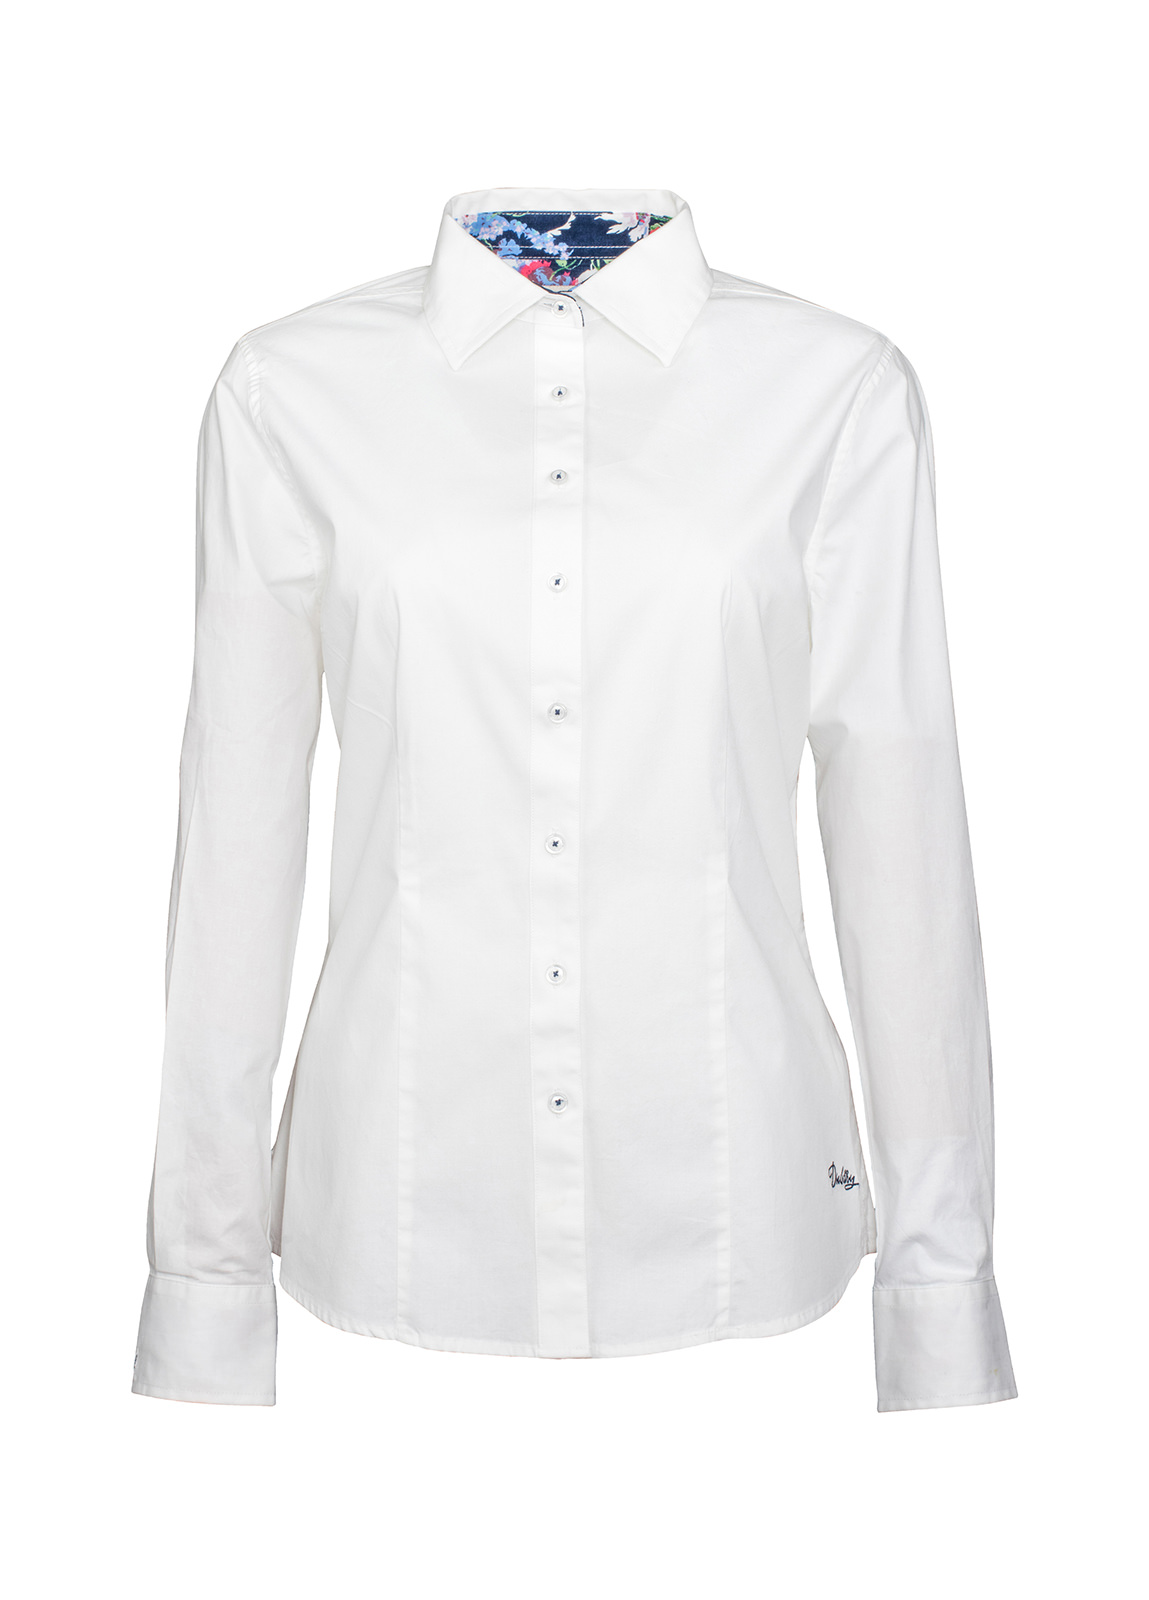 Petunia Floral Trim Shirt - White